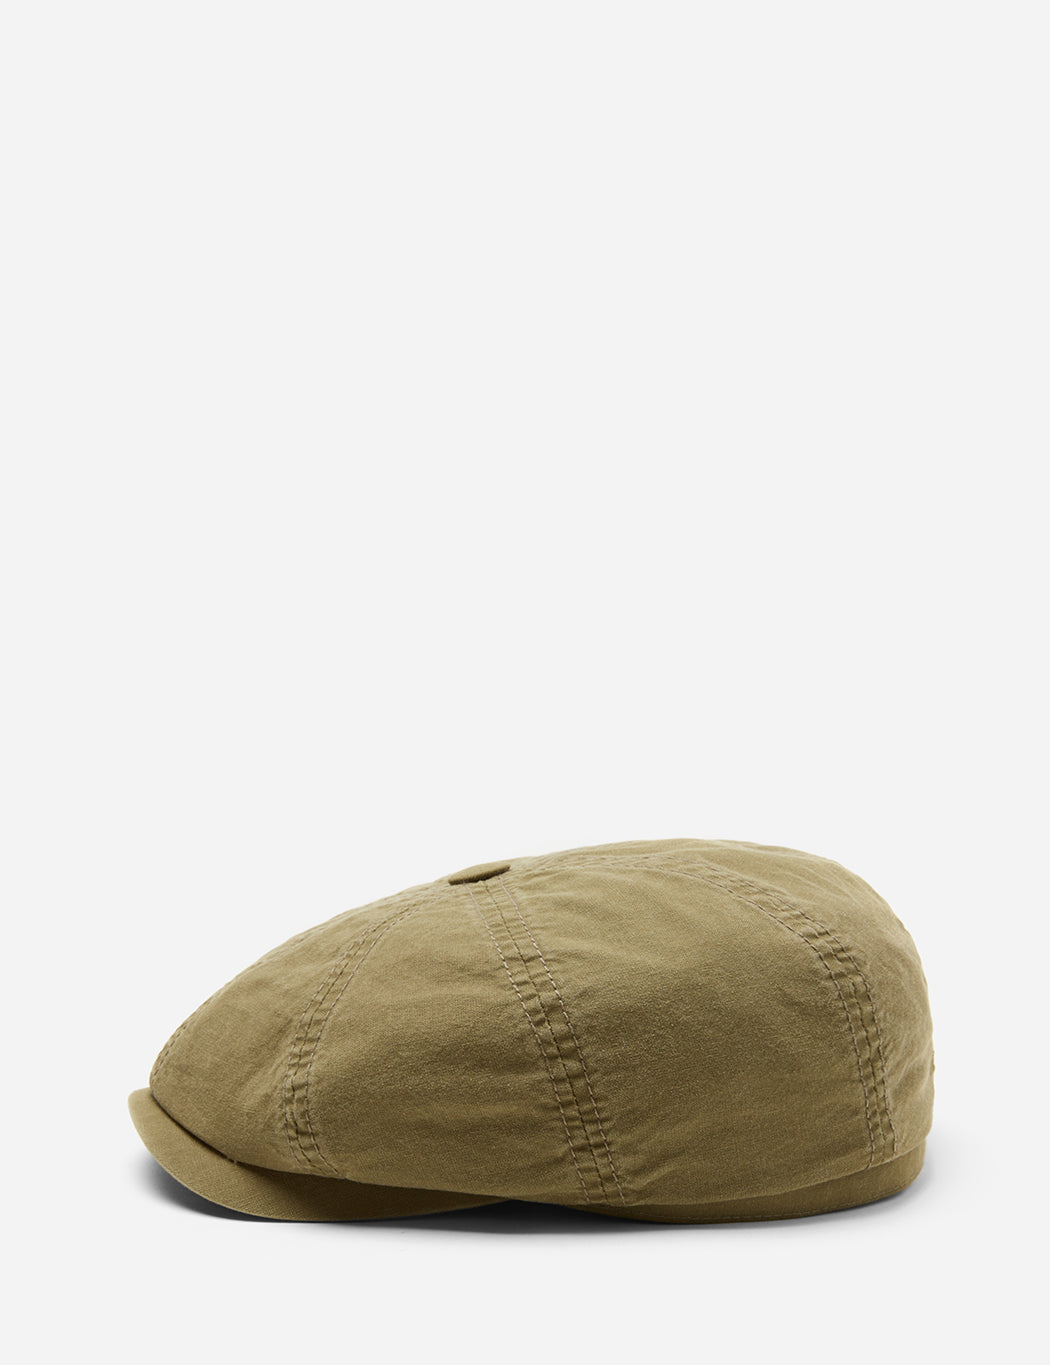 a5ff192af45 Stetson Hatteras Cotton Newsboy Cap (Cotton) in Olive Green